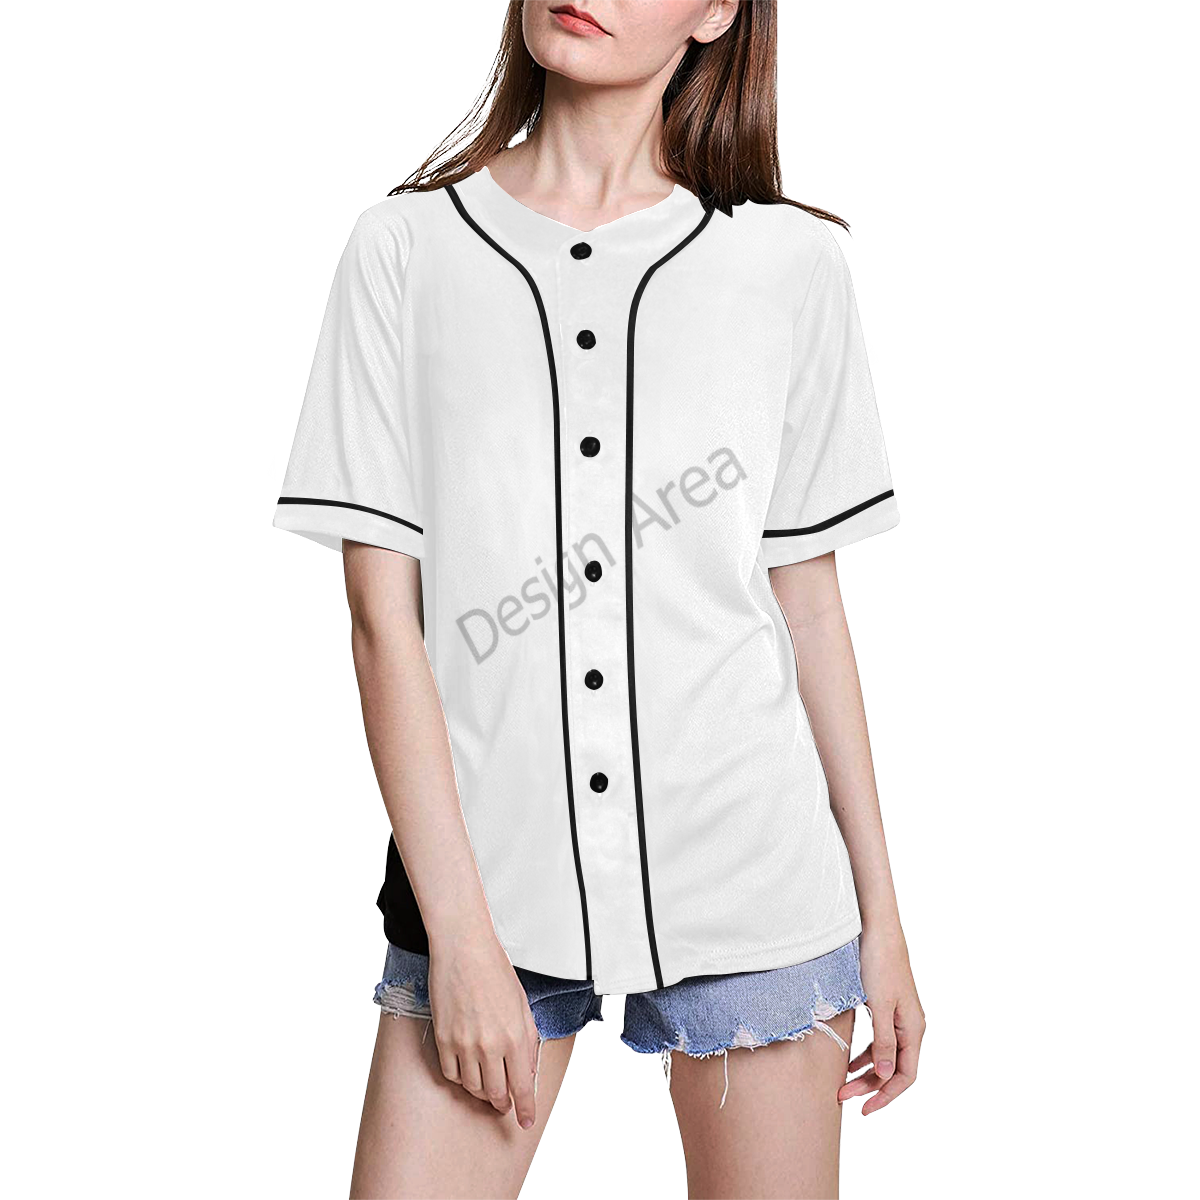 All Over Print Baseball Jersey for Women (Model T50)